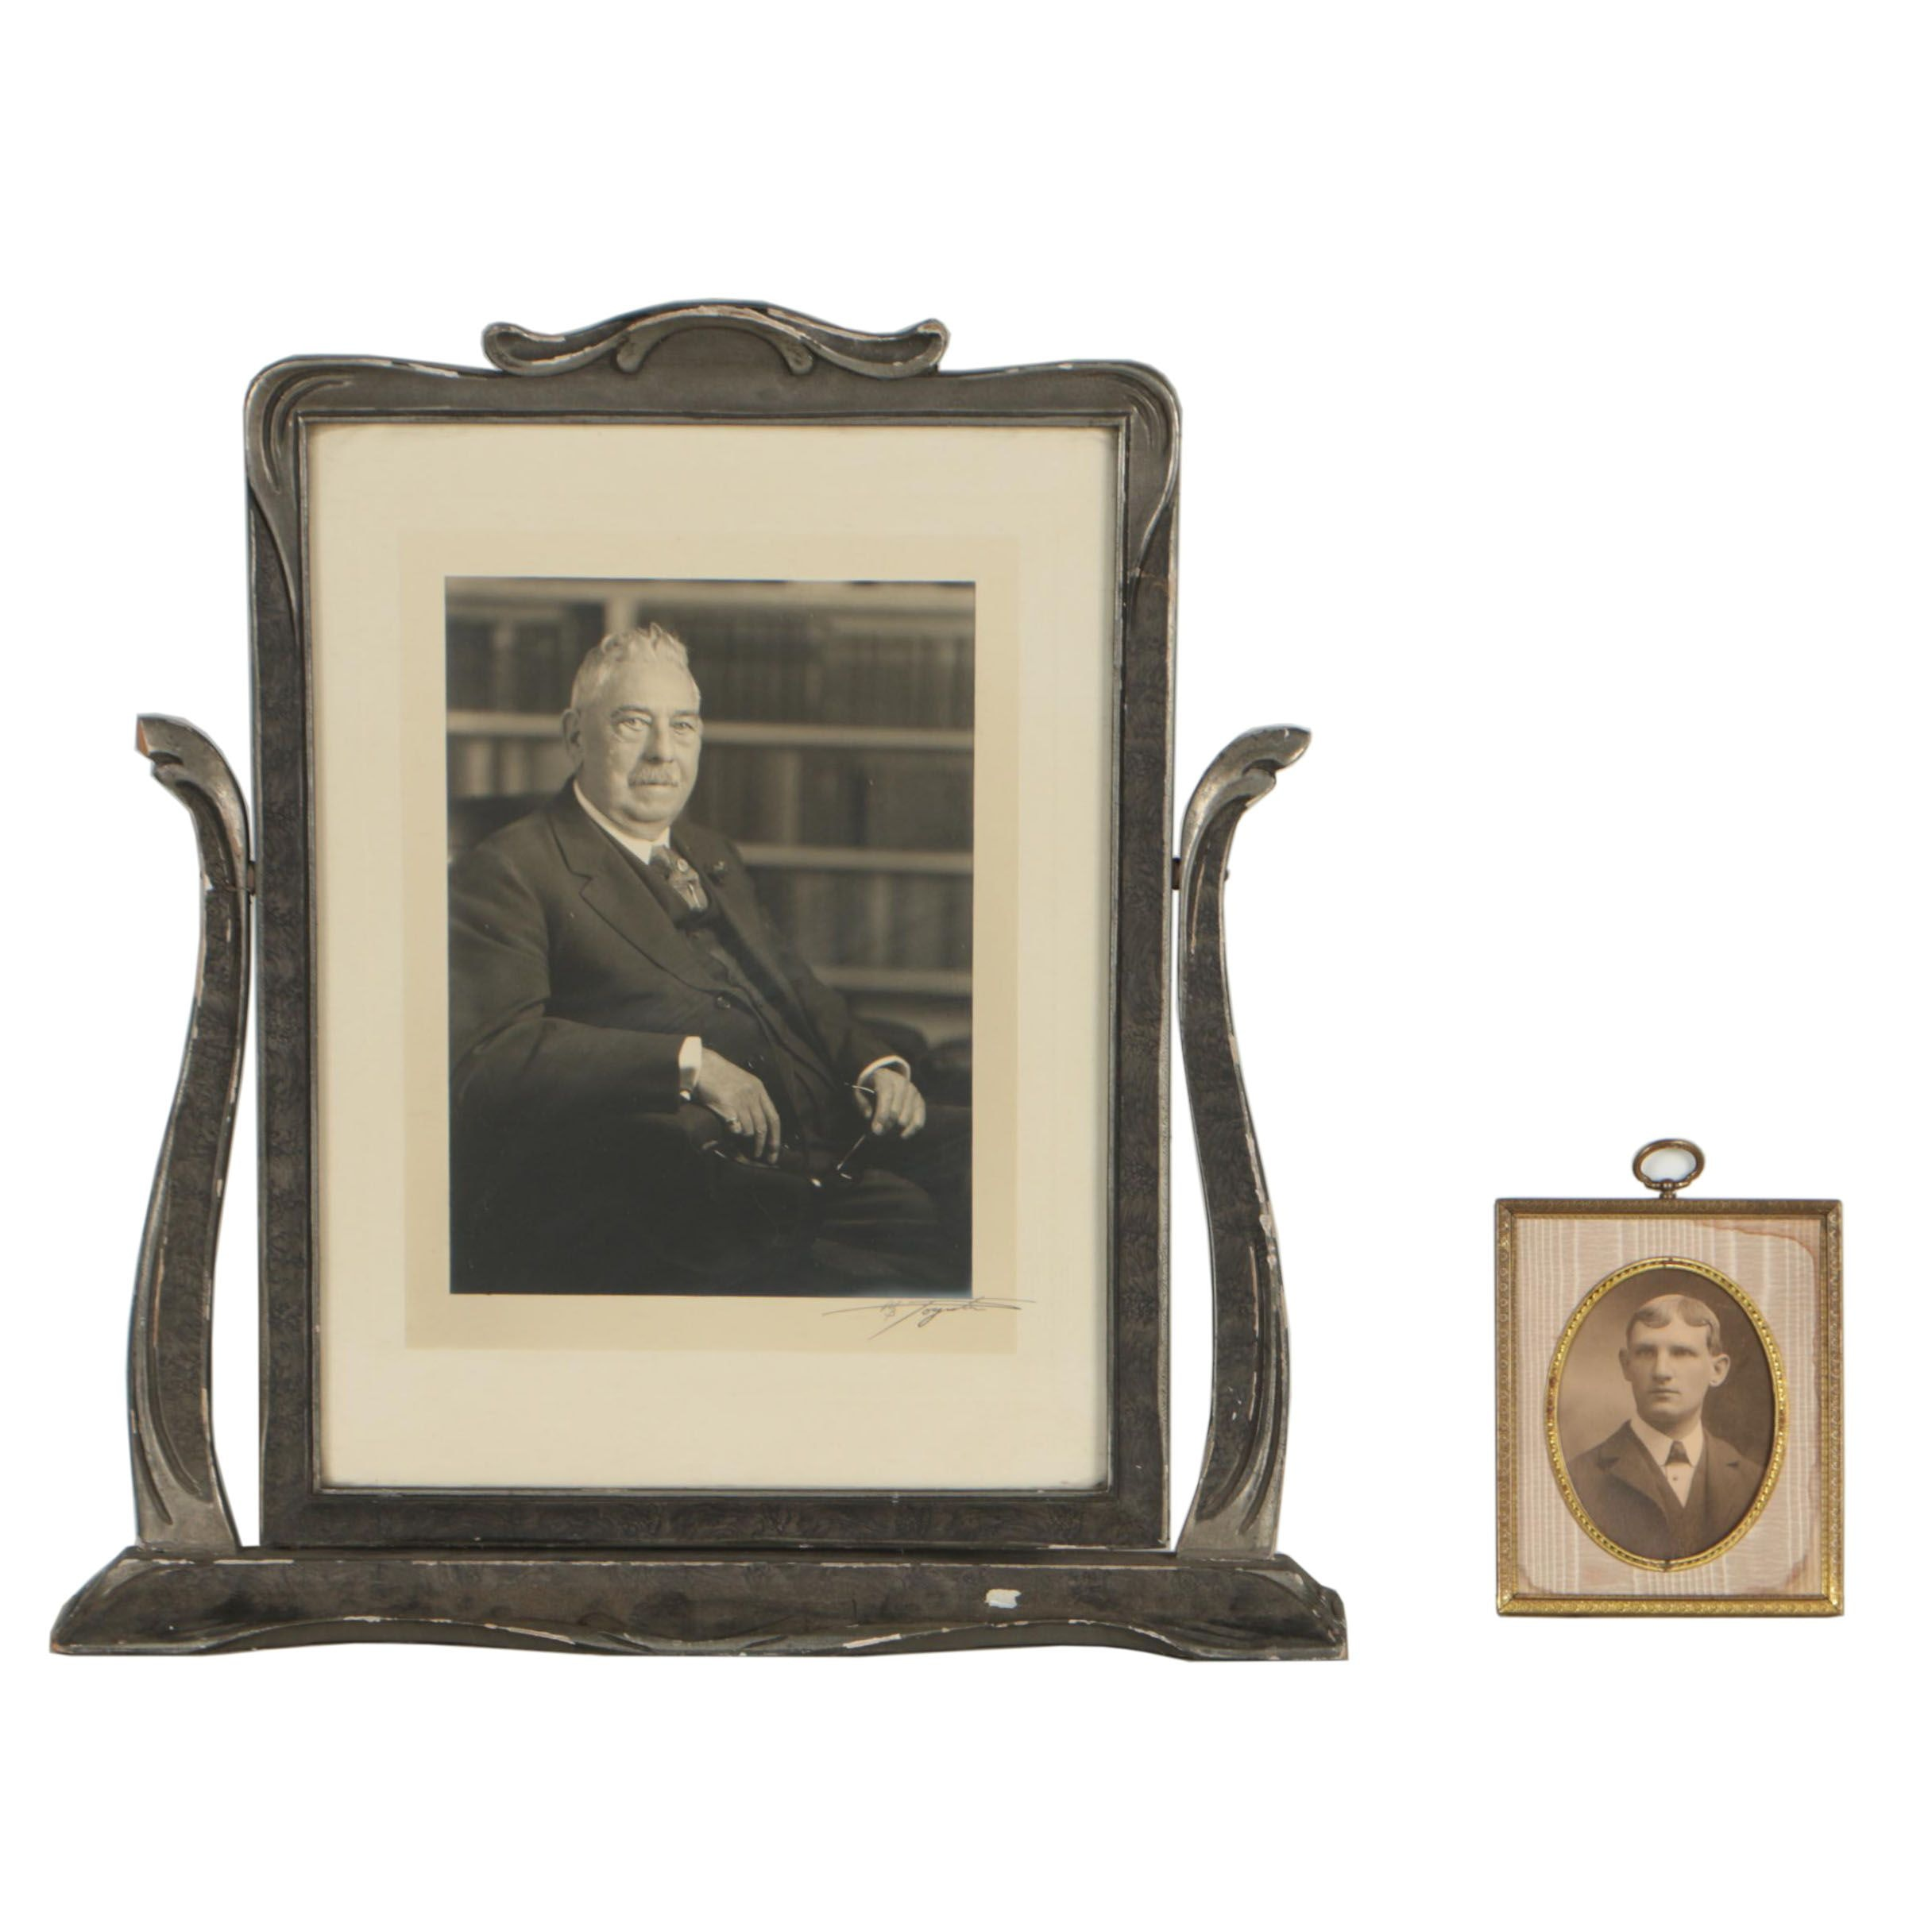 Silver Gelatin Portraits in Art Nouveau and Early 20th Century Frames